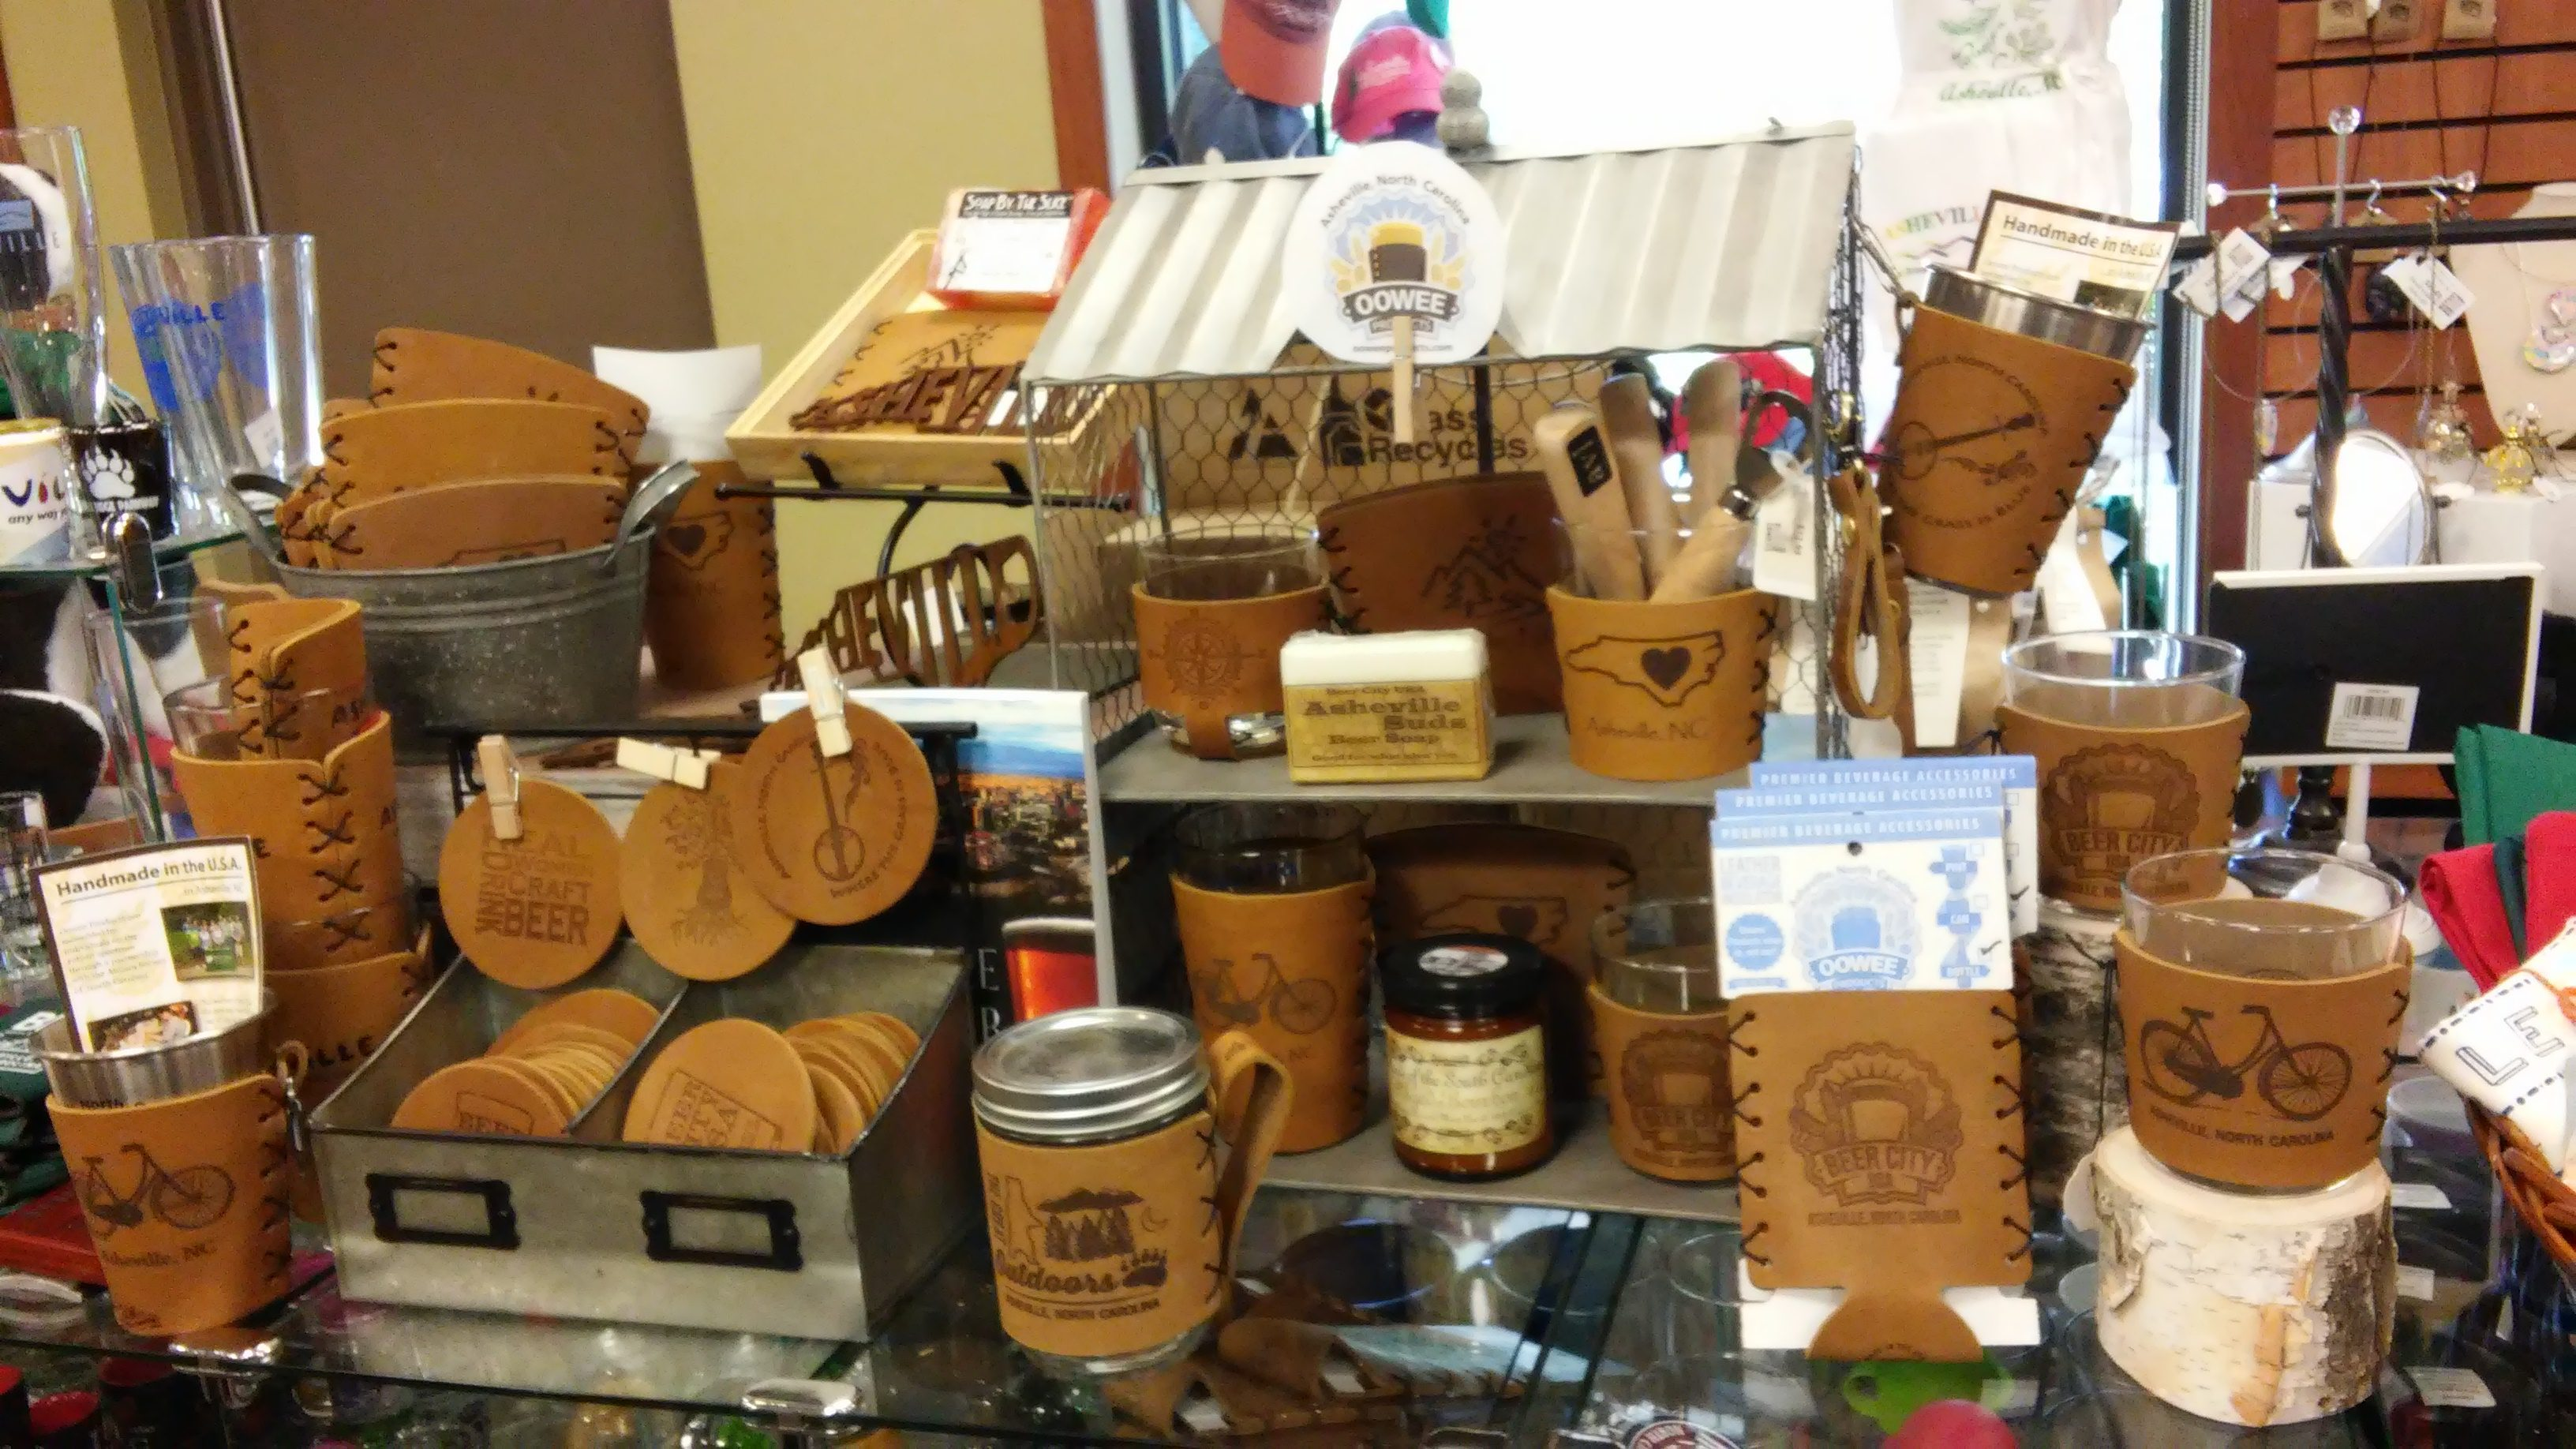 Oowee leather sleeve display at the Asheville chamber of commerce.